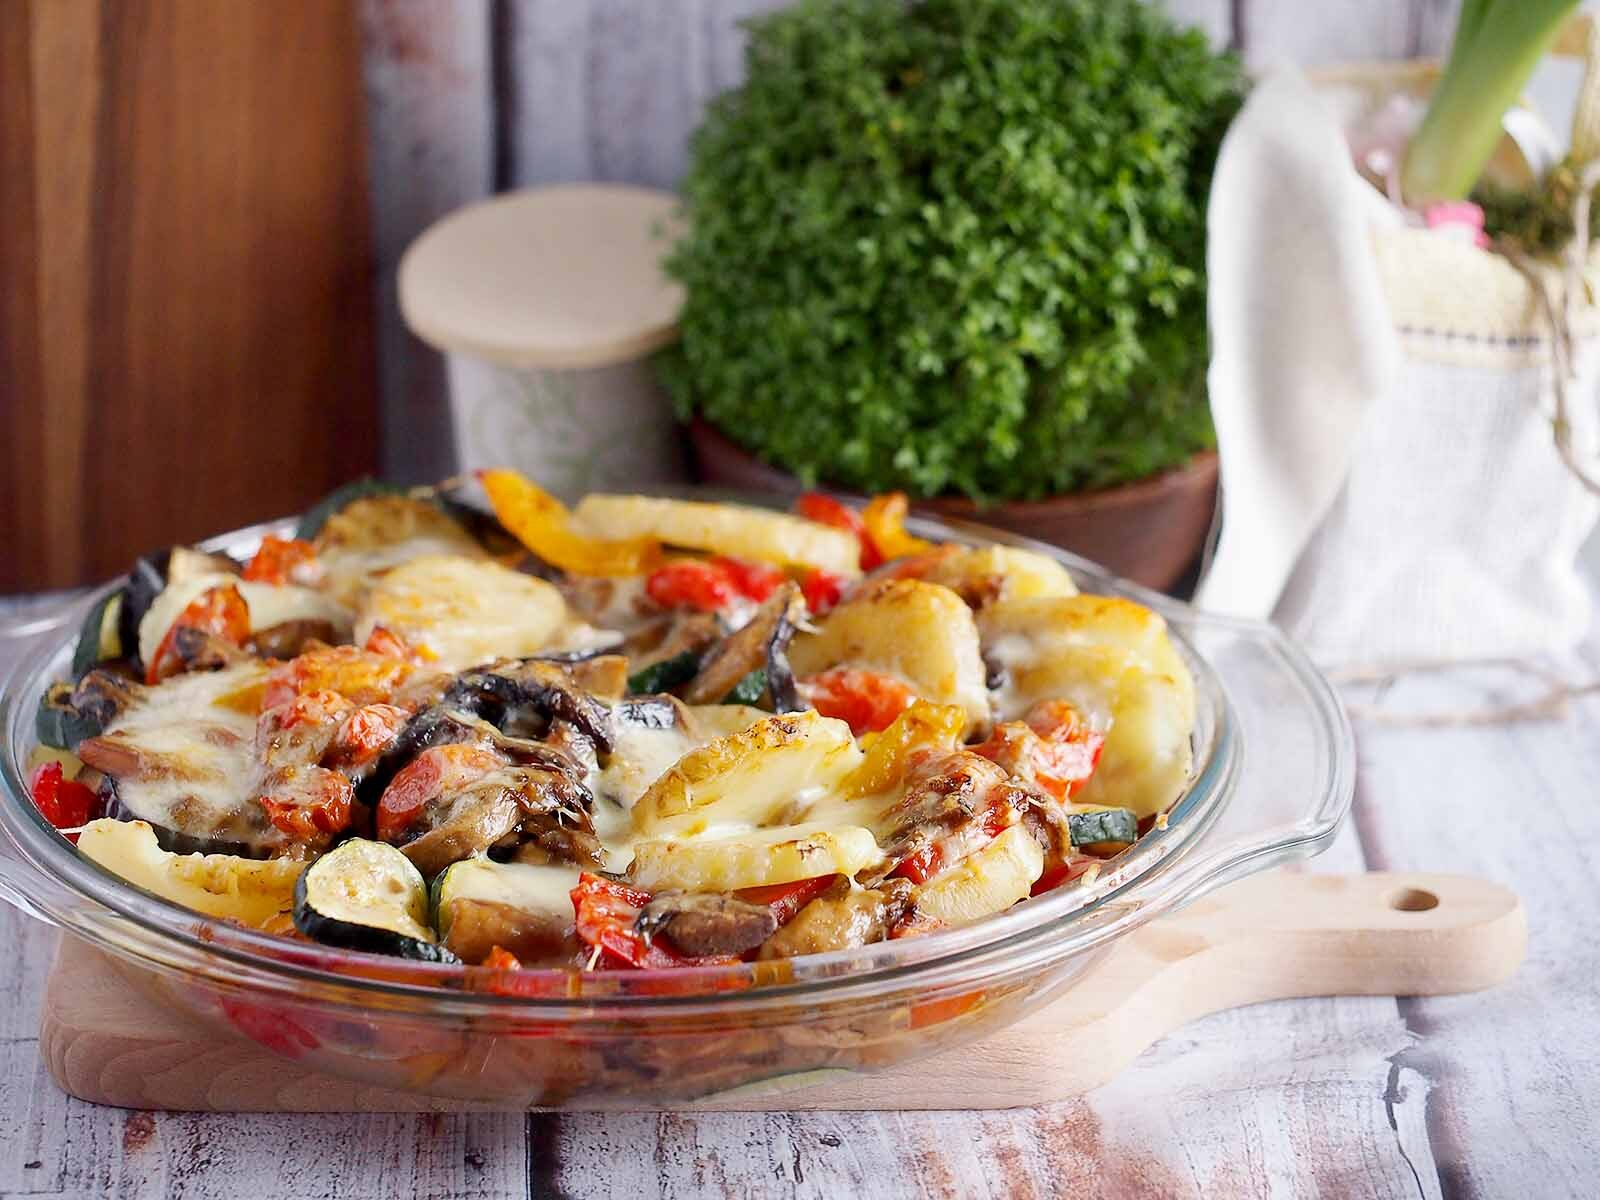 Ziemniaki zapiekane z grzybami i warzywami / Baked potatoes with mushrooms and vegetables